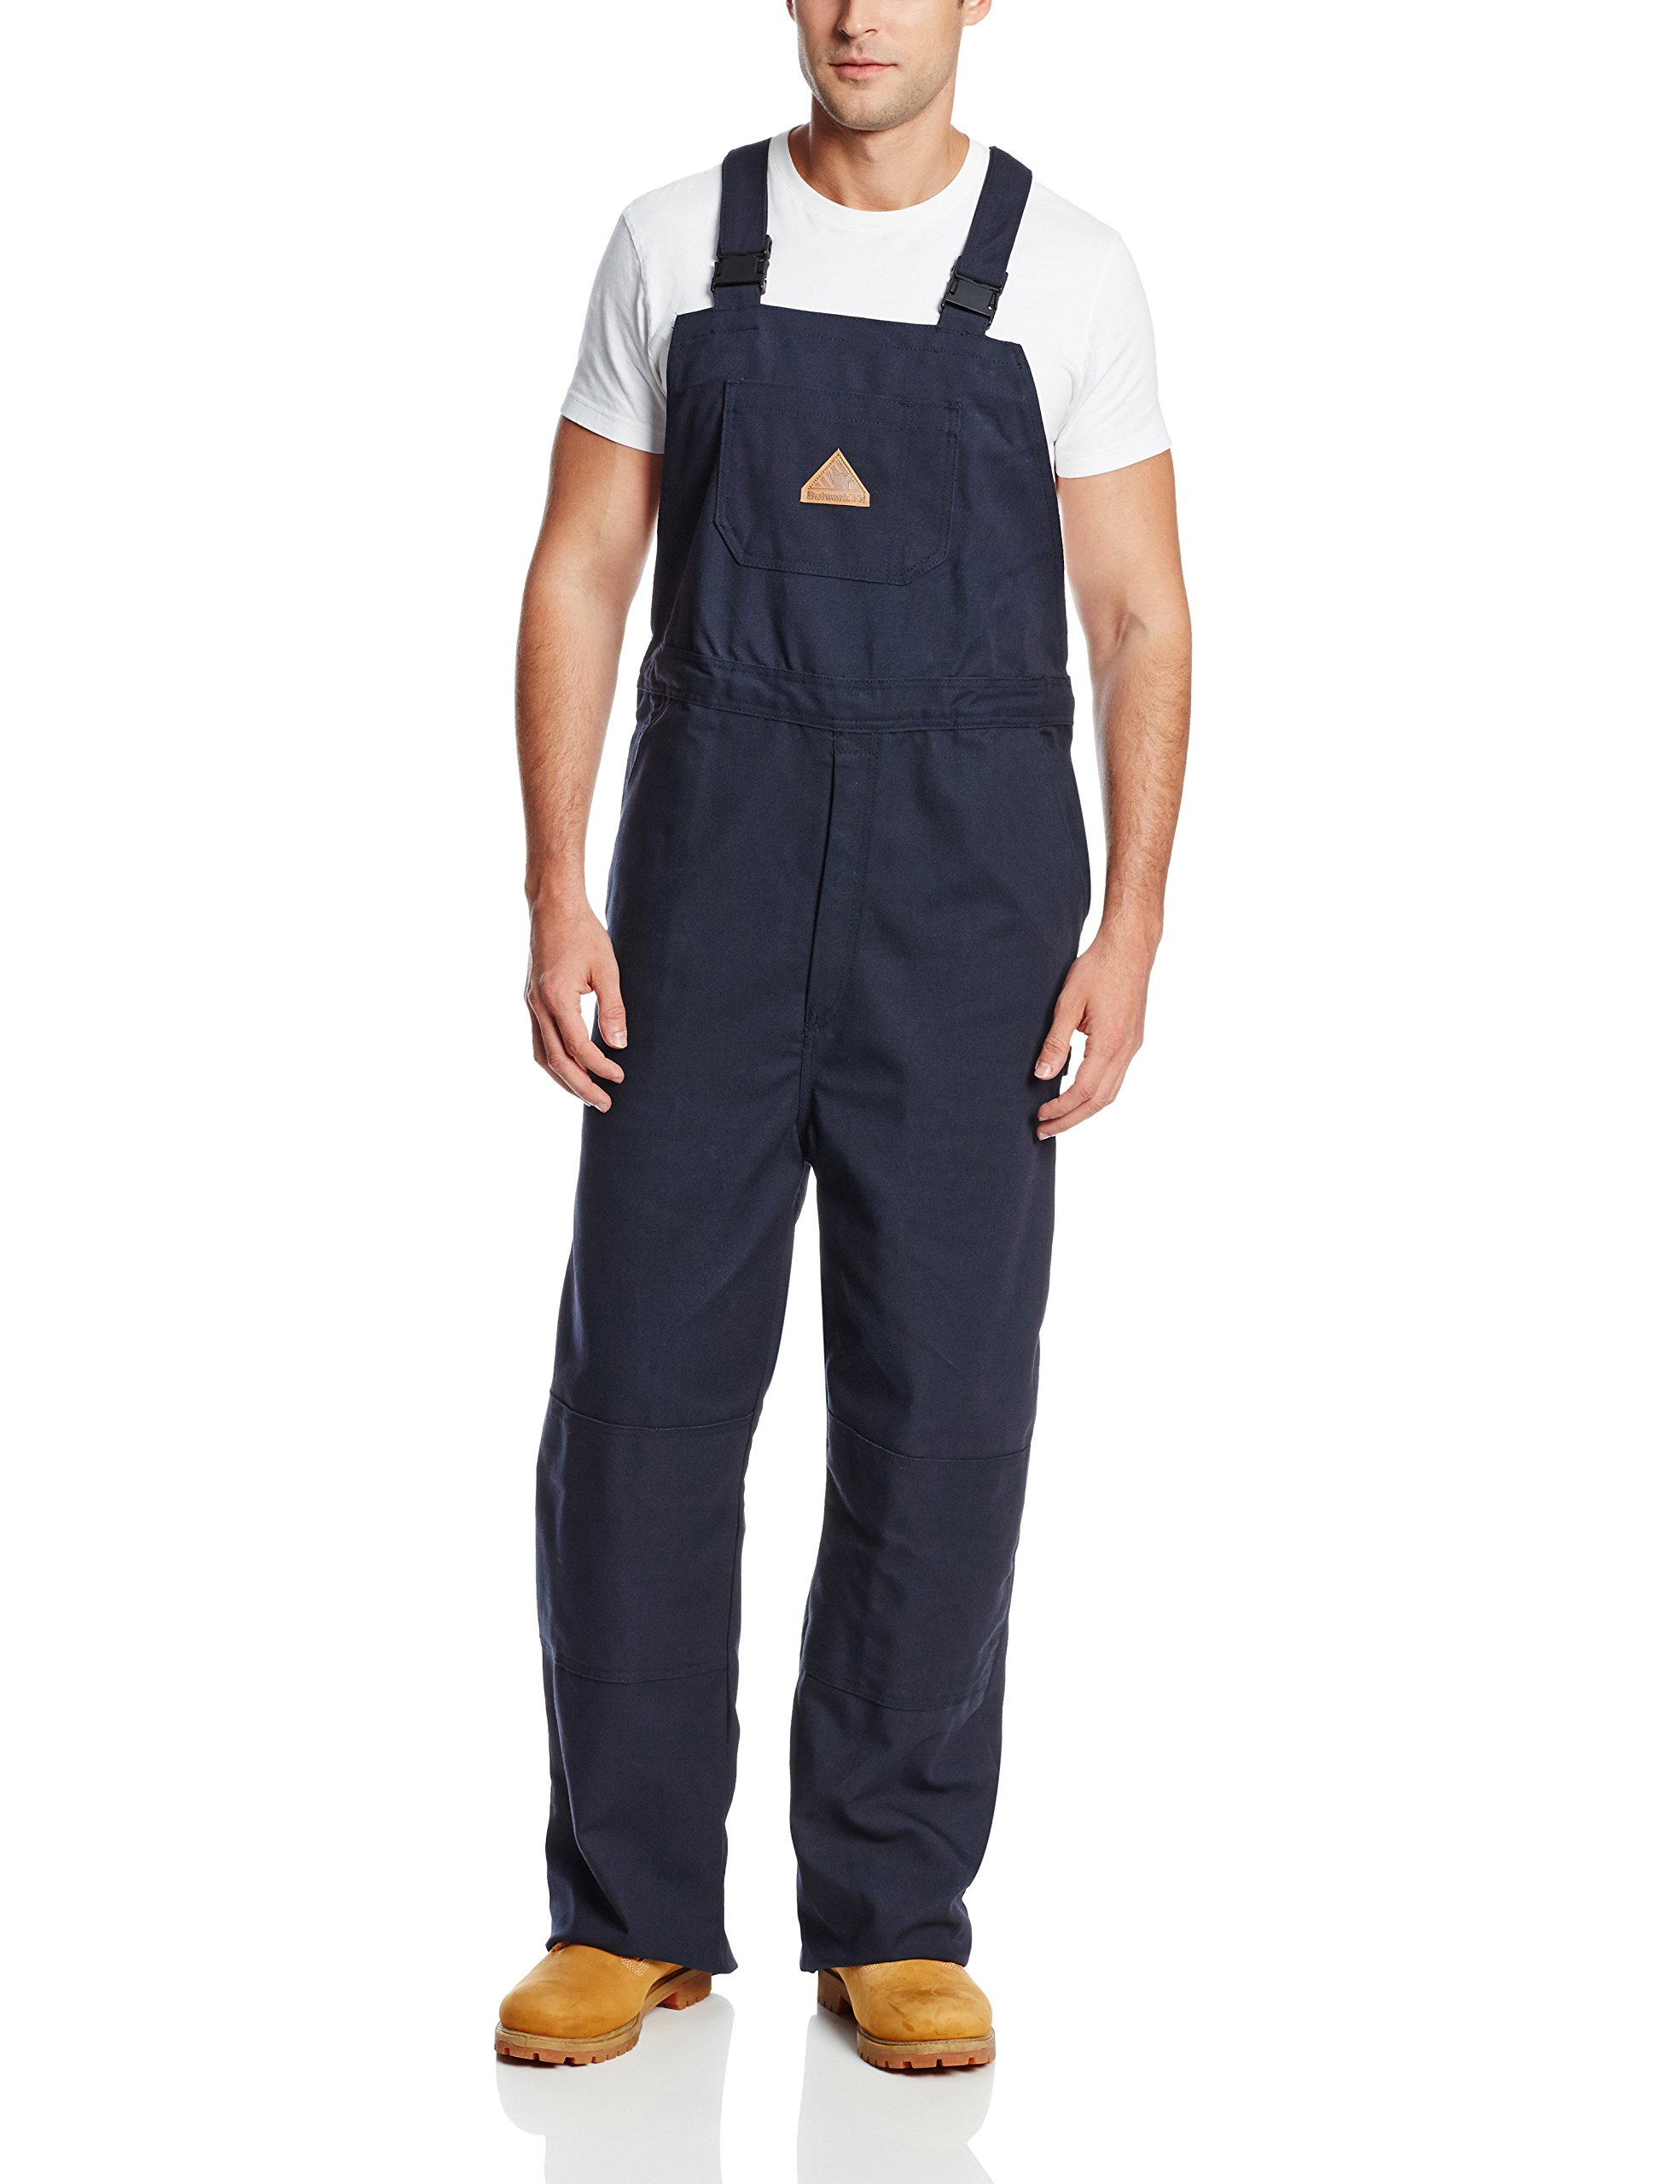 Bulwark Flame Resistant 11 oz Cotton/Nylon Excel FR ComforTouch Regular Duck Unlined Bib Overall with Two Large Hip Pockets, Navy Duck, 2X-Large